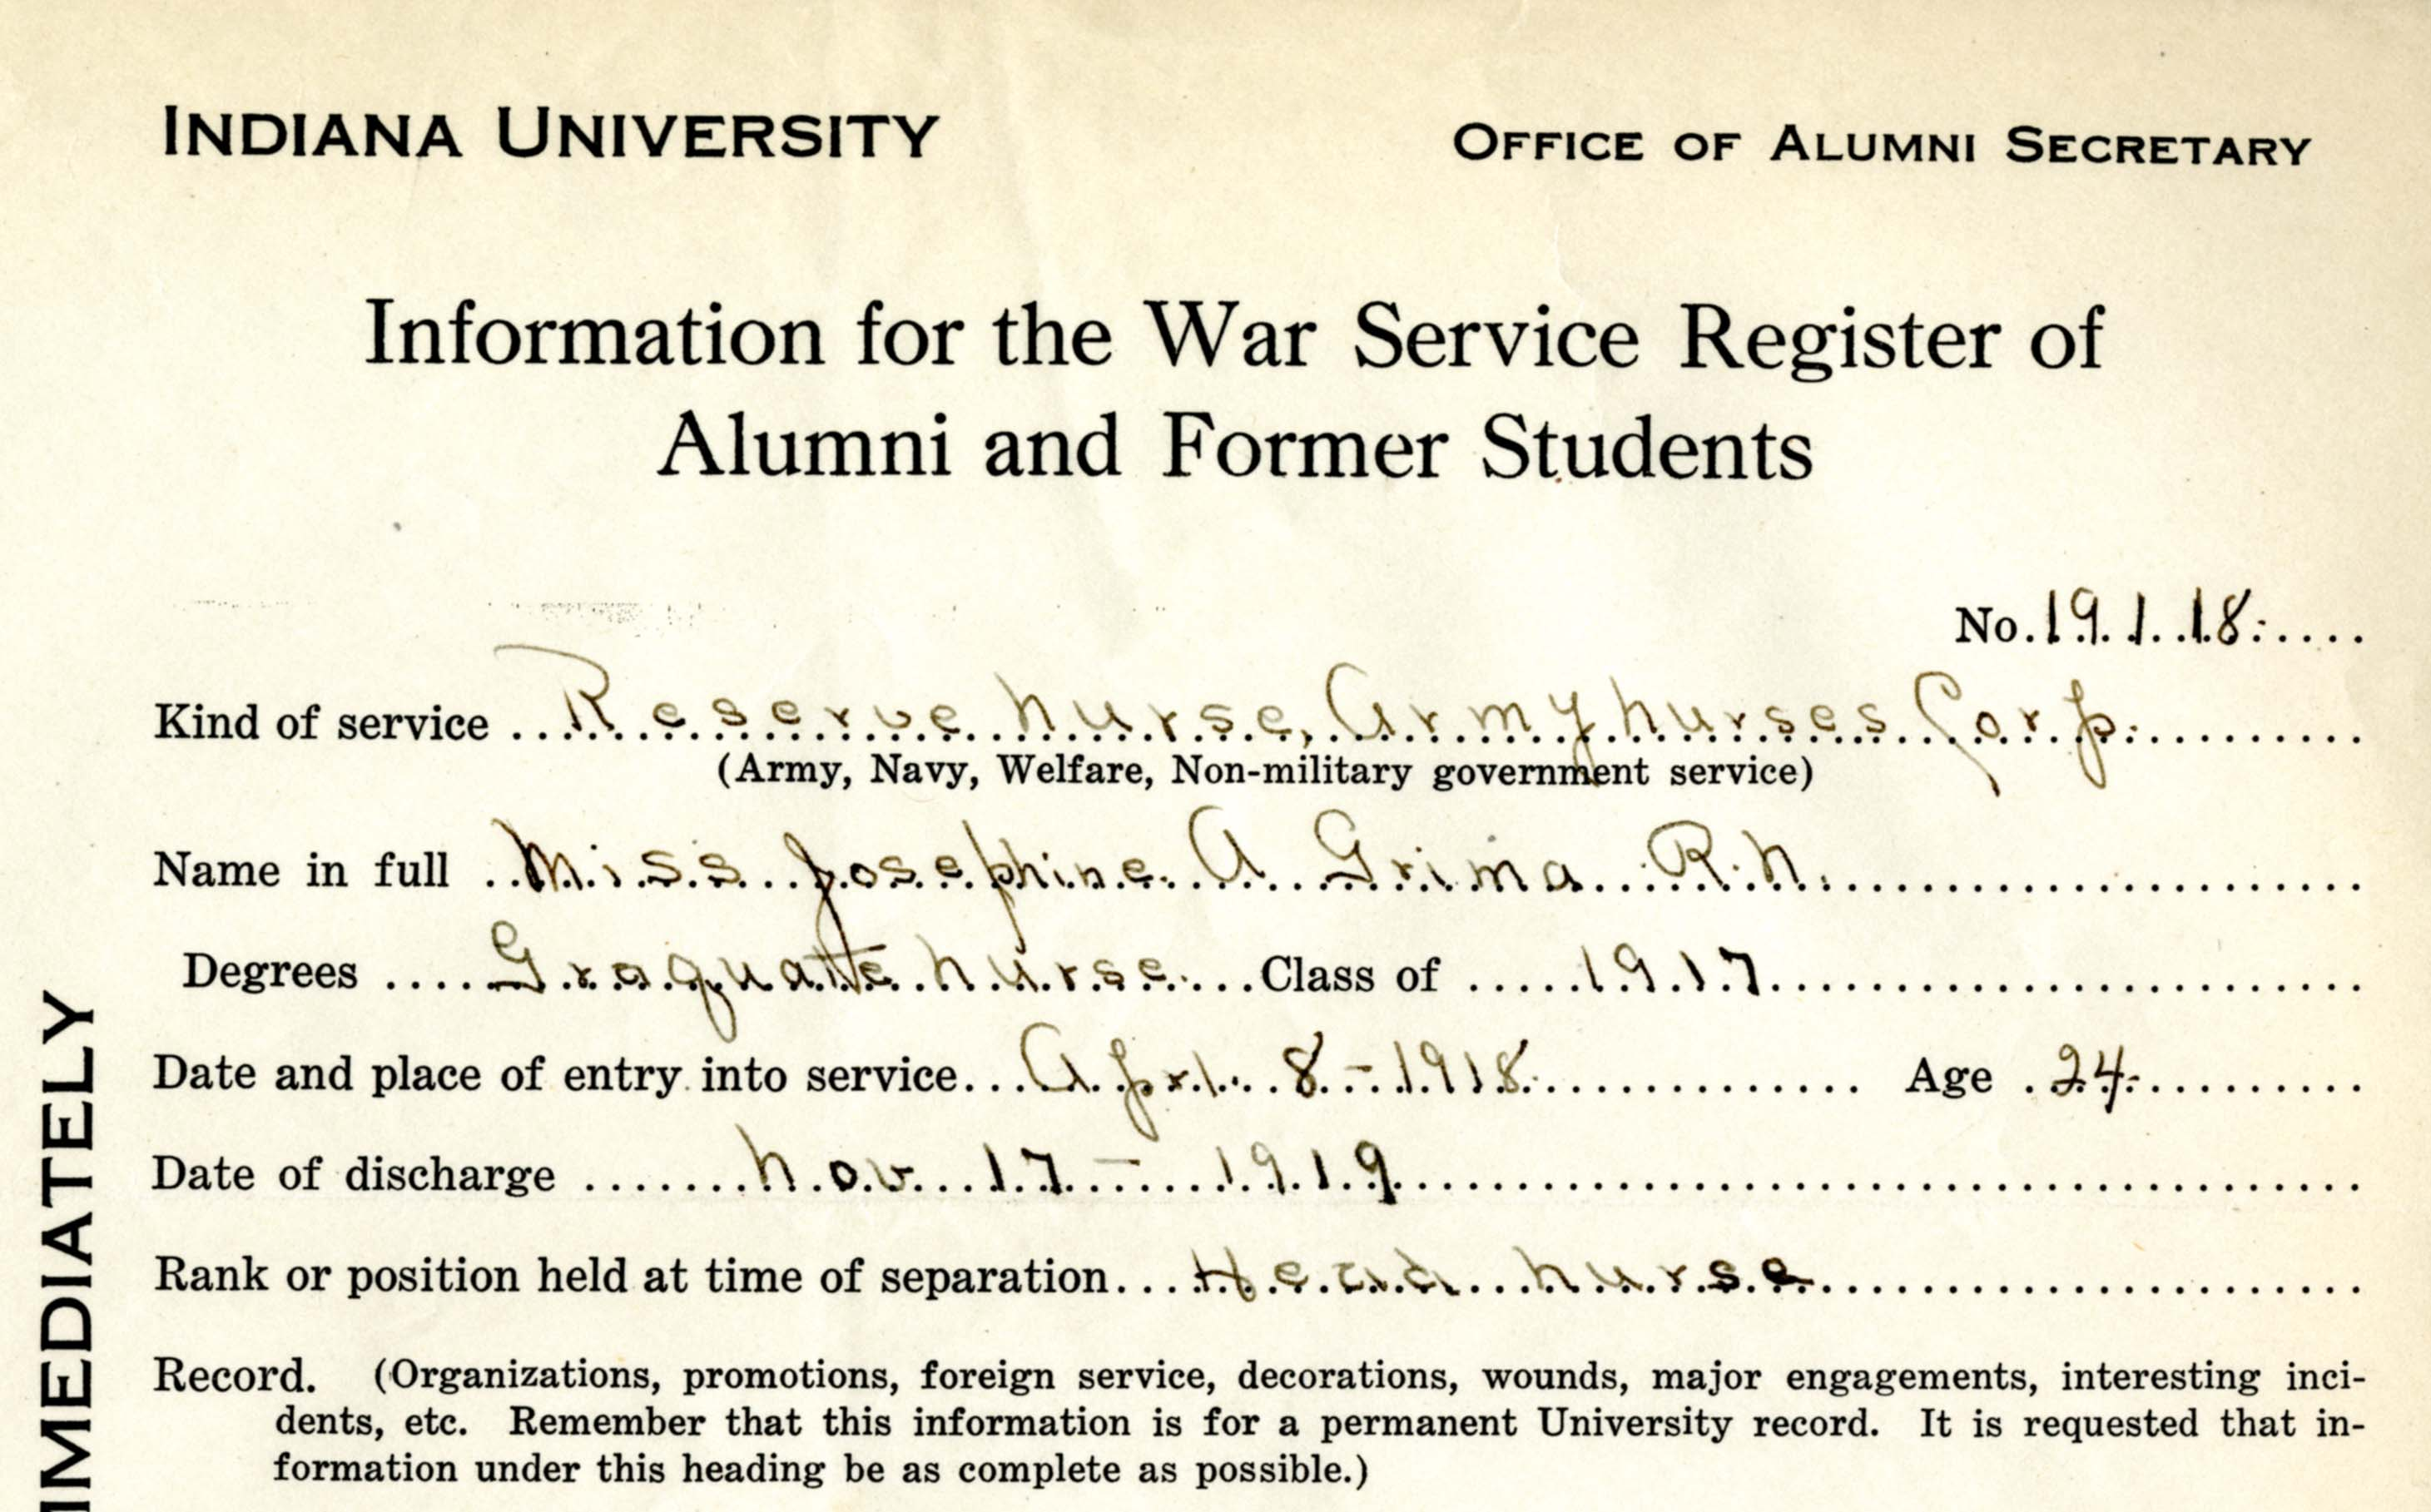 Segment of Grima's IU War Service Register entry.